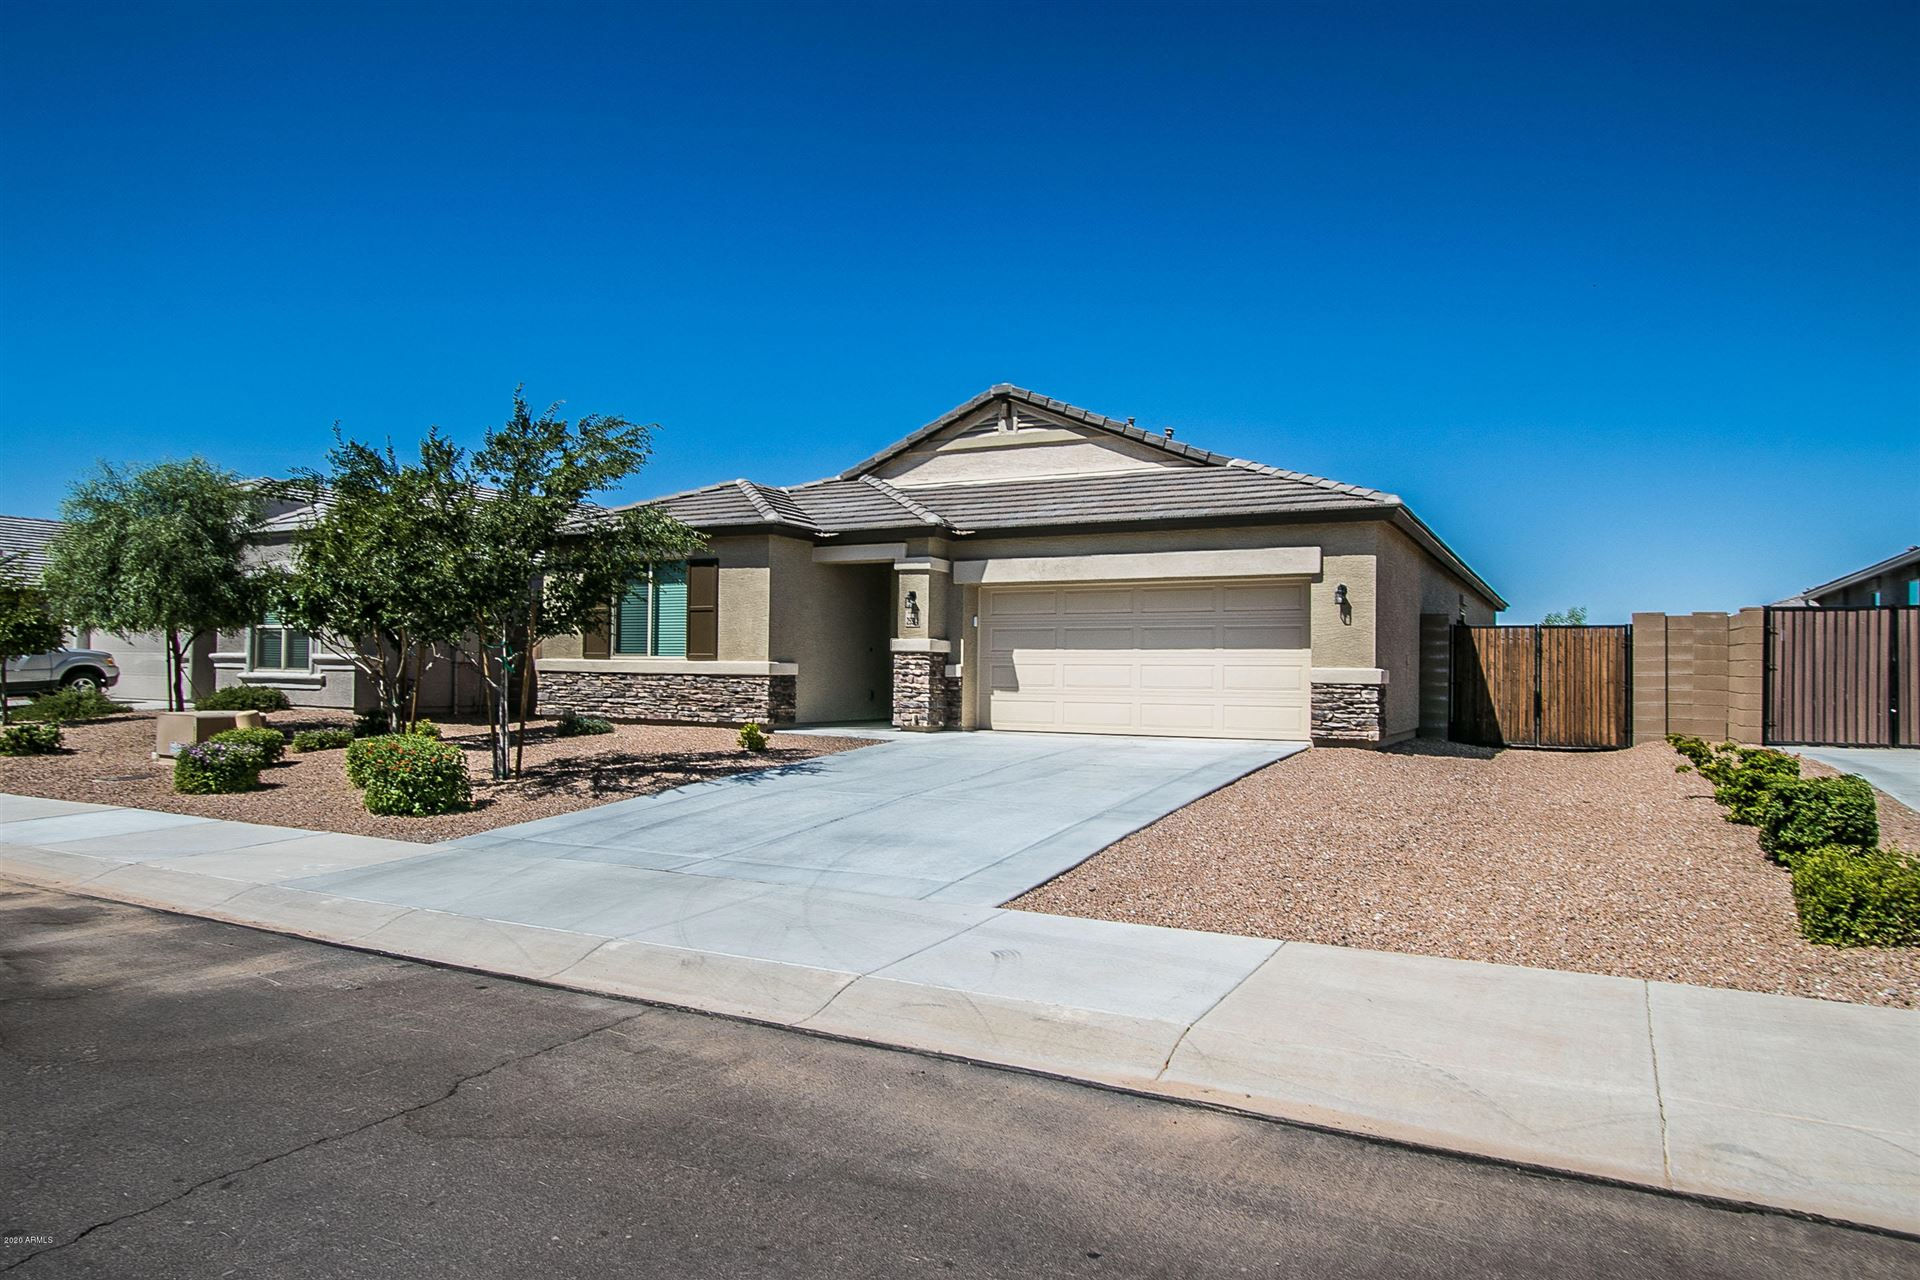 25914 N 137TH Avenue, Peoria, AZ 85383 - MLS#: 6096990